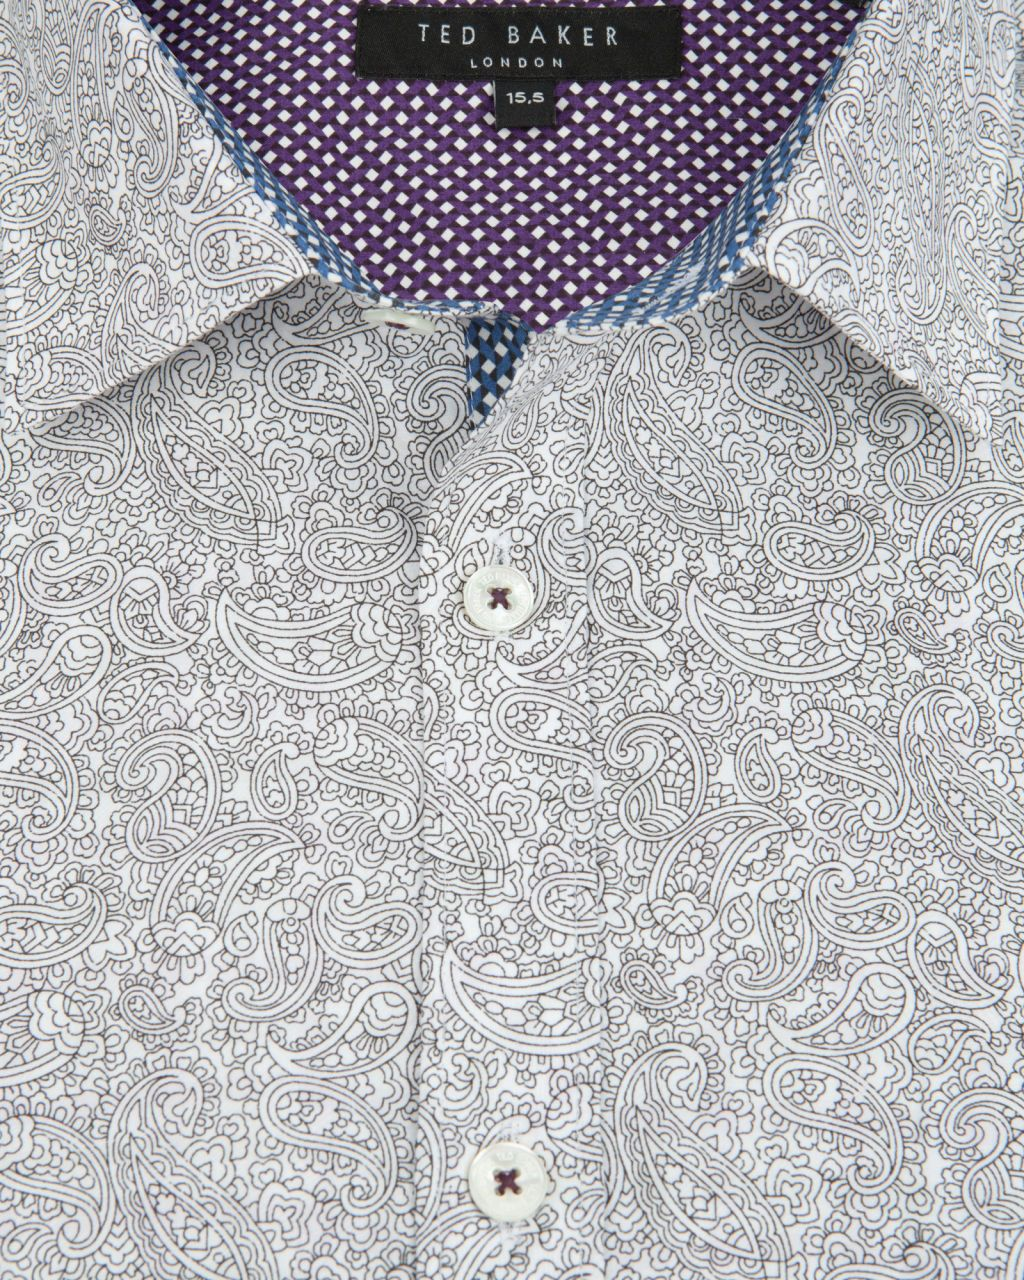 Paisley Print Shirt White Shirts Ted Baker Uk Men Fashion